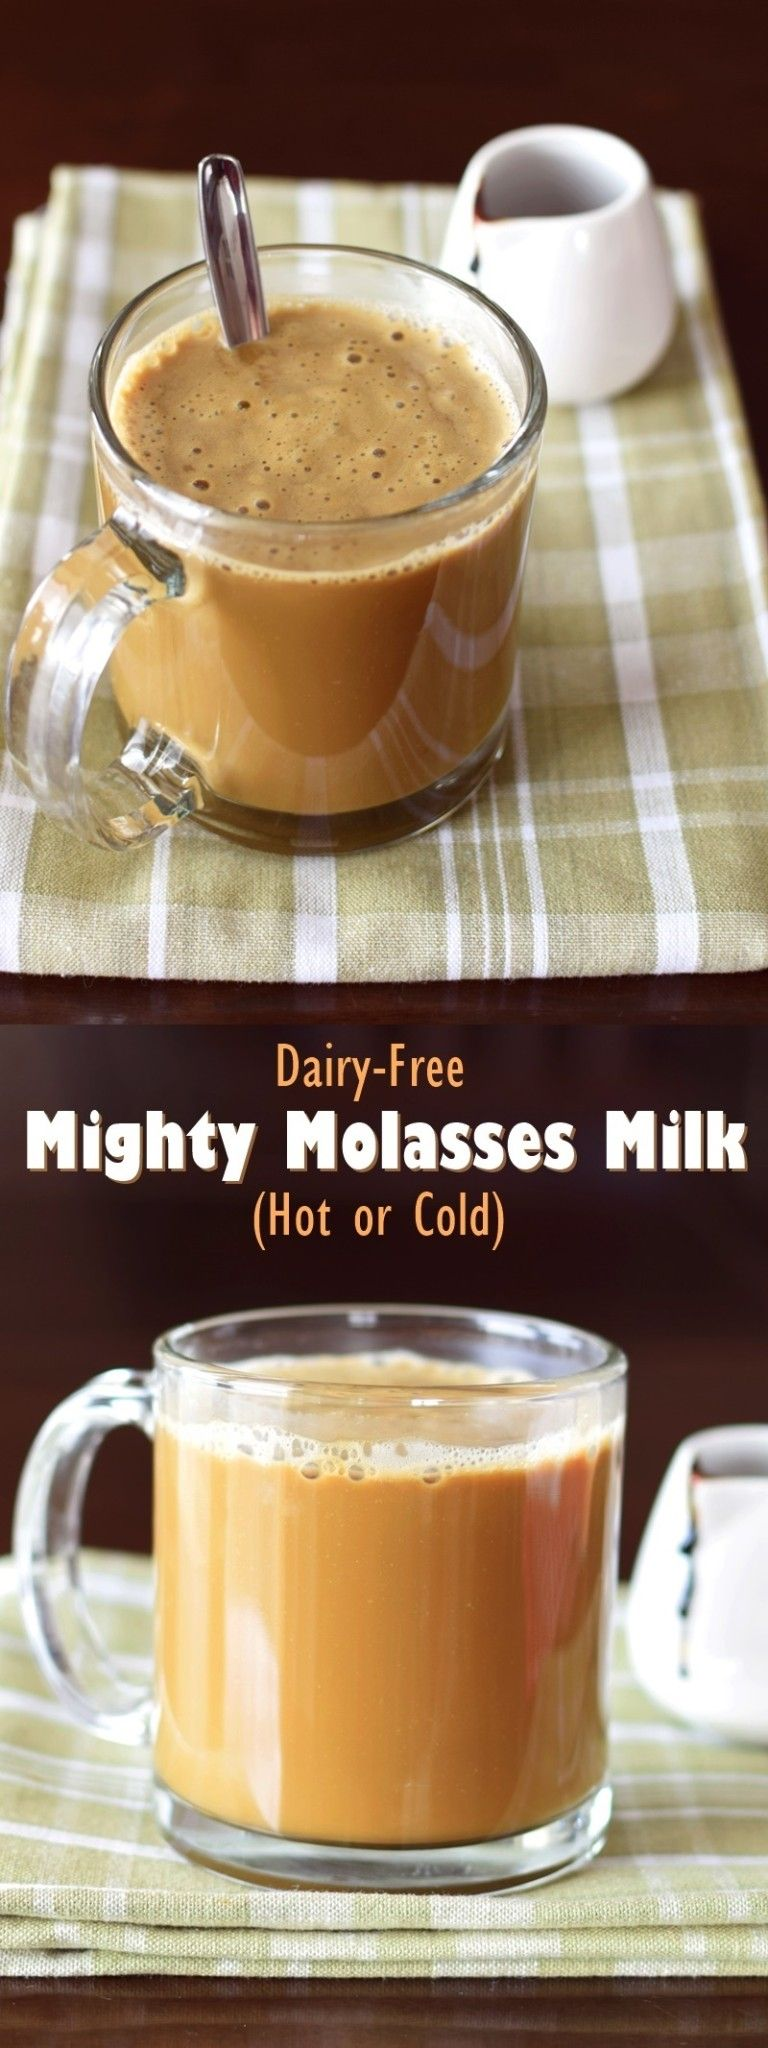 Mighty Molasses Milk! Enjoy warm or cold. Two recipes, both dairy-free, soy-free & vegan yet rich in calcium!